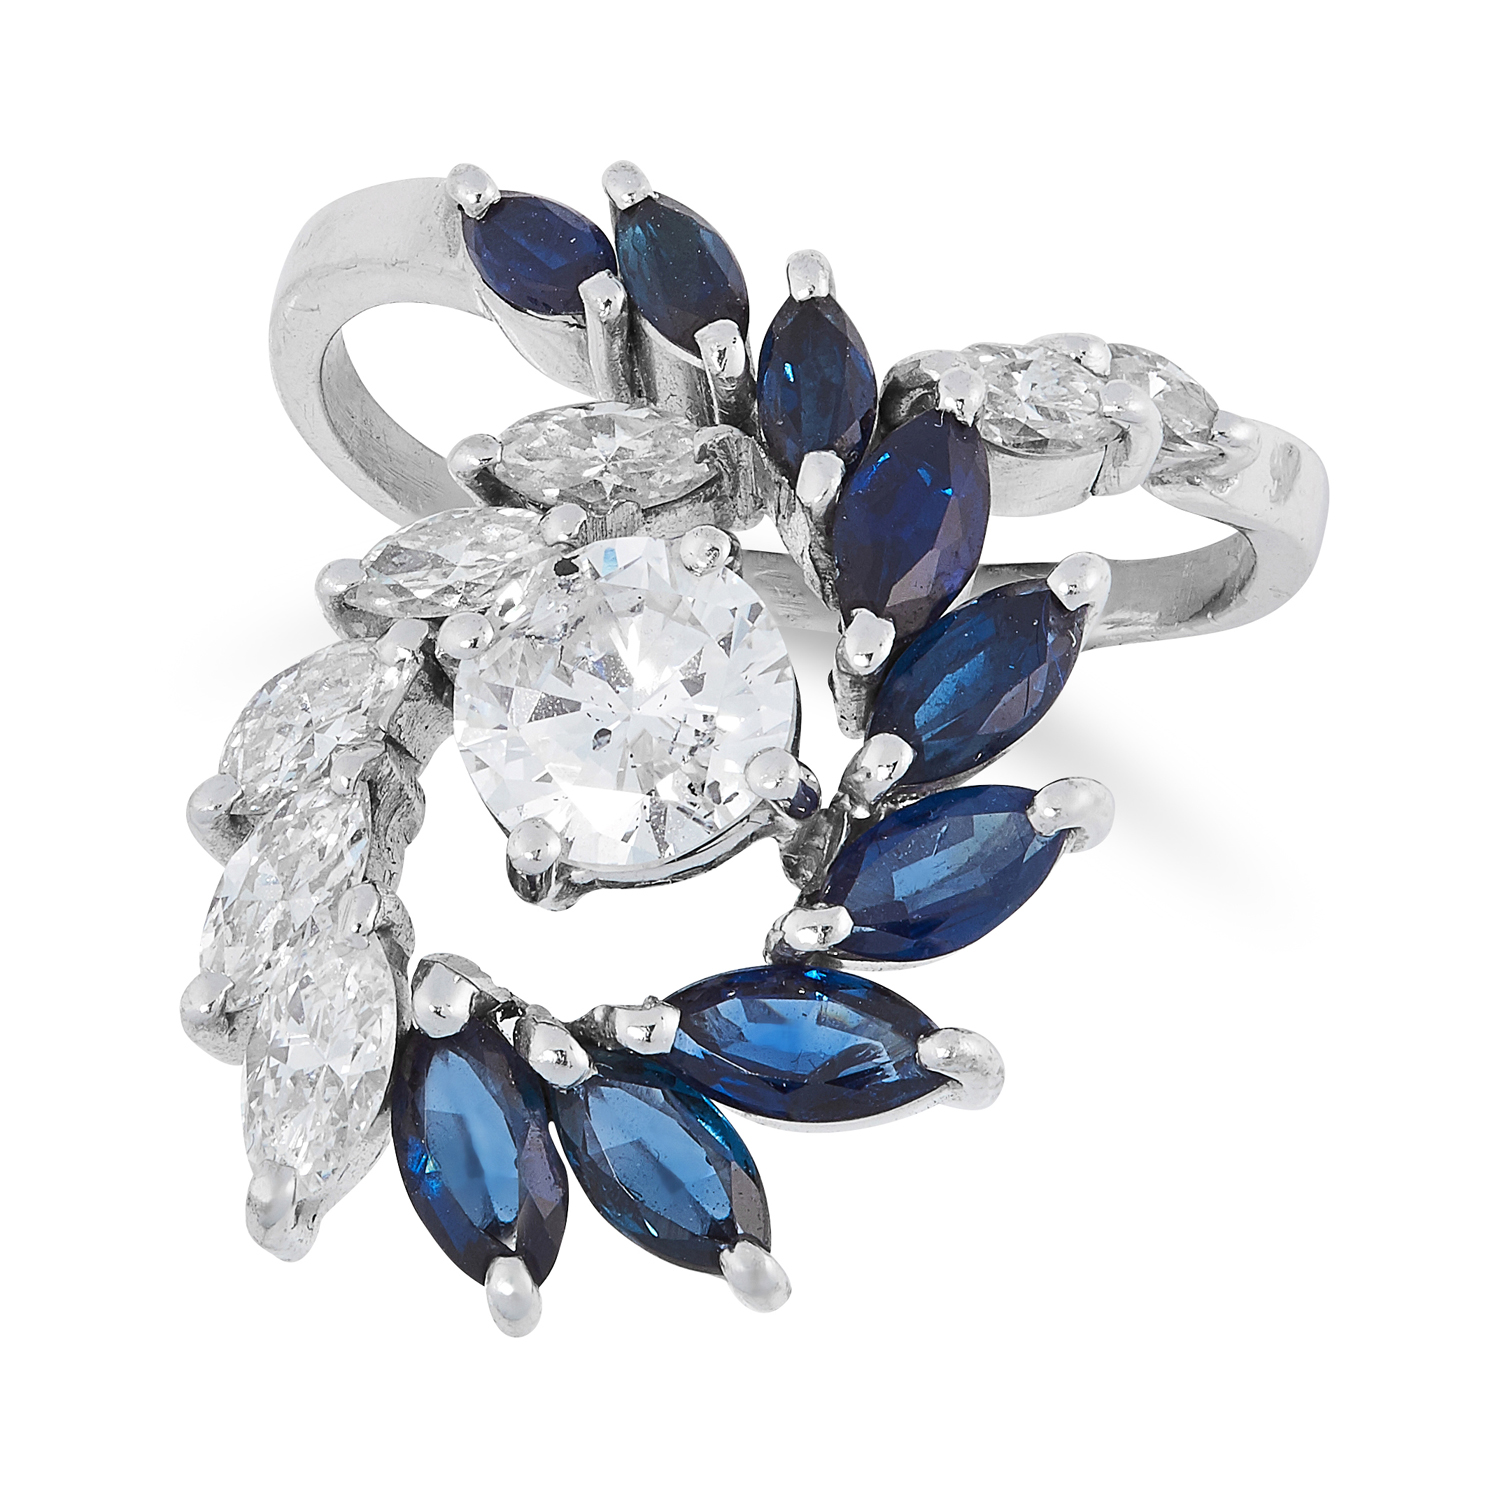 A DIAMOND AND SAPPHIRE DRESS RING set with a central round cut diamond of 1.0 carats, accented by